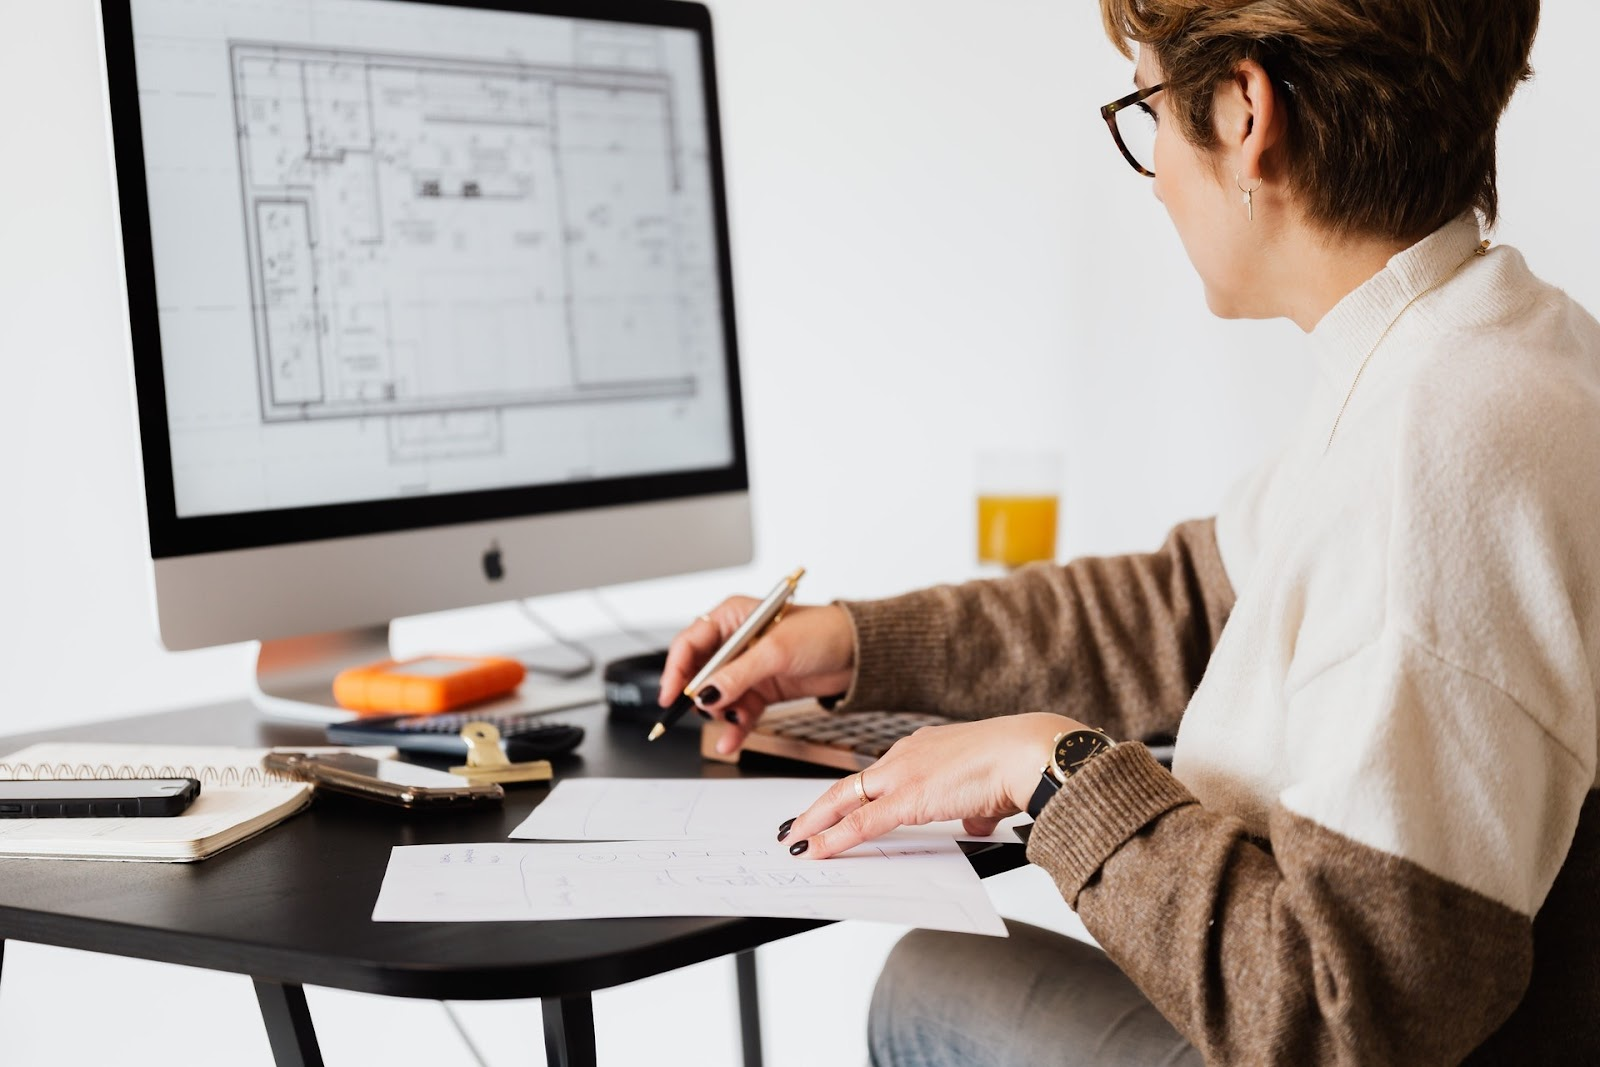 predesigning your house layout